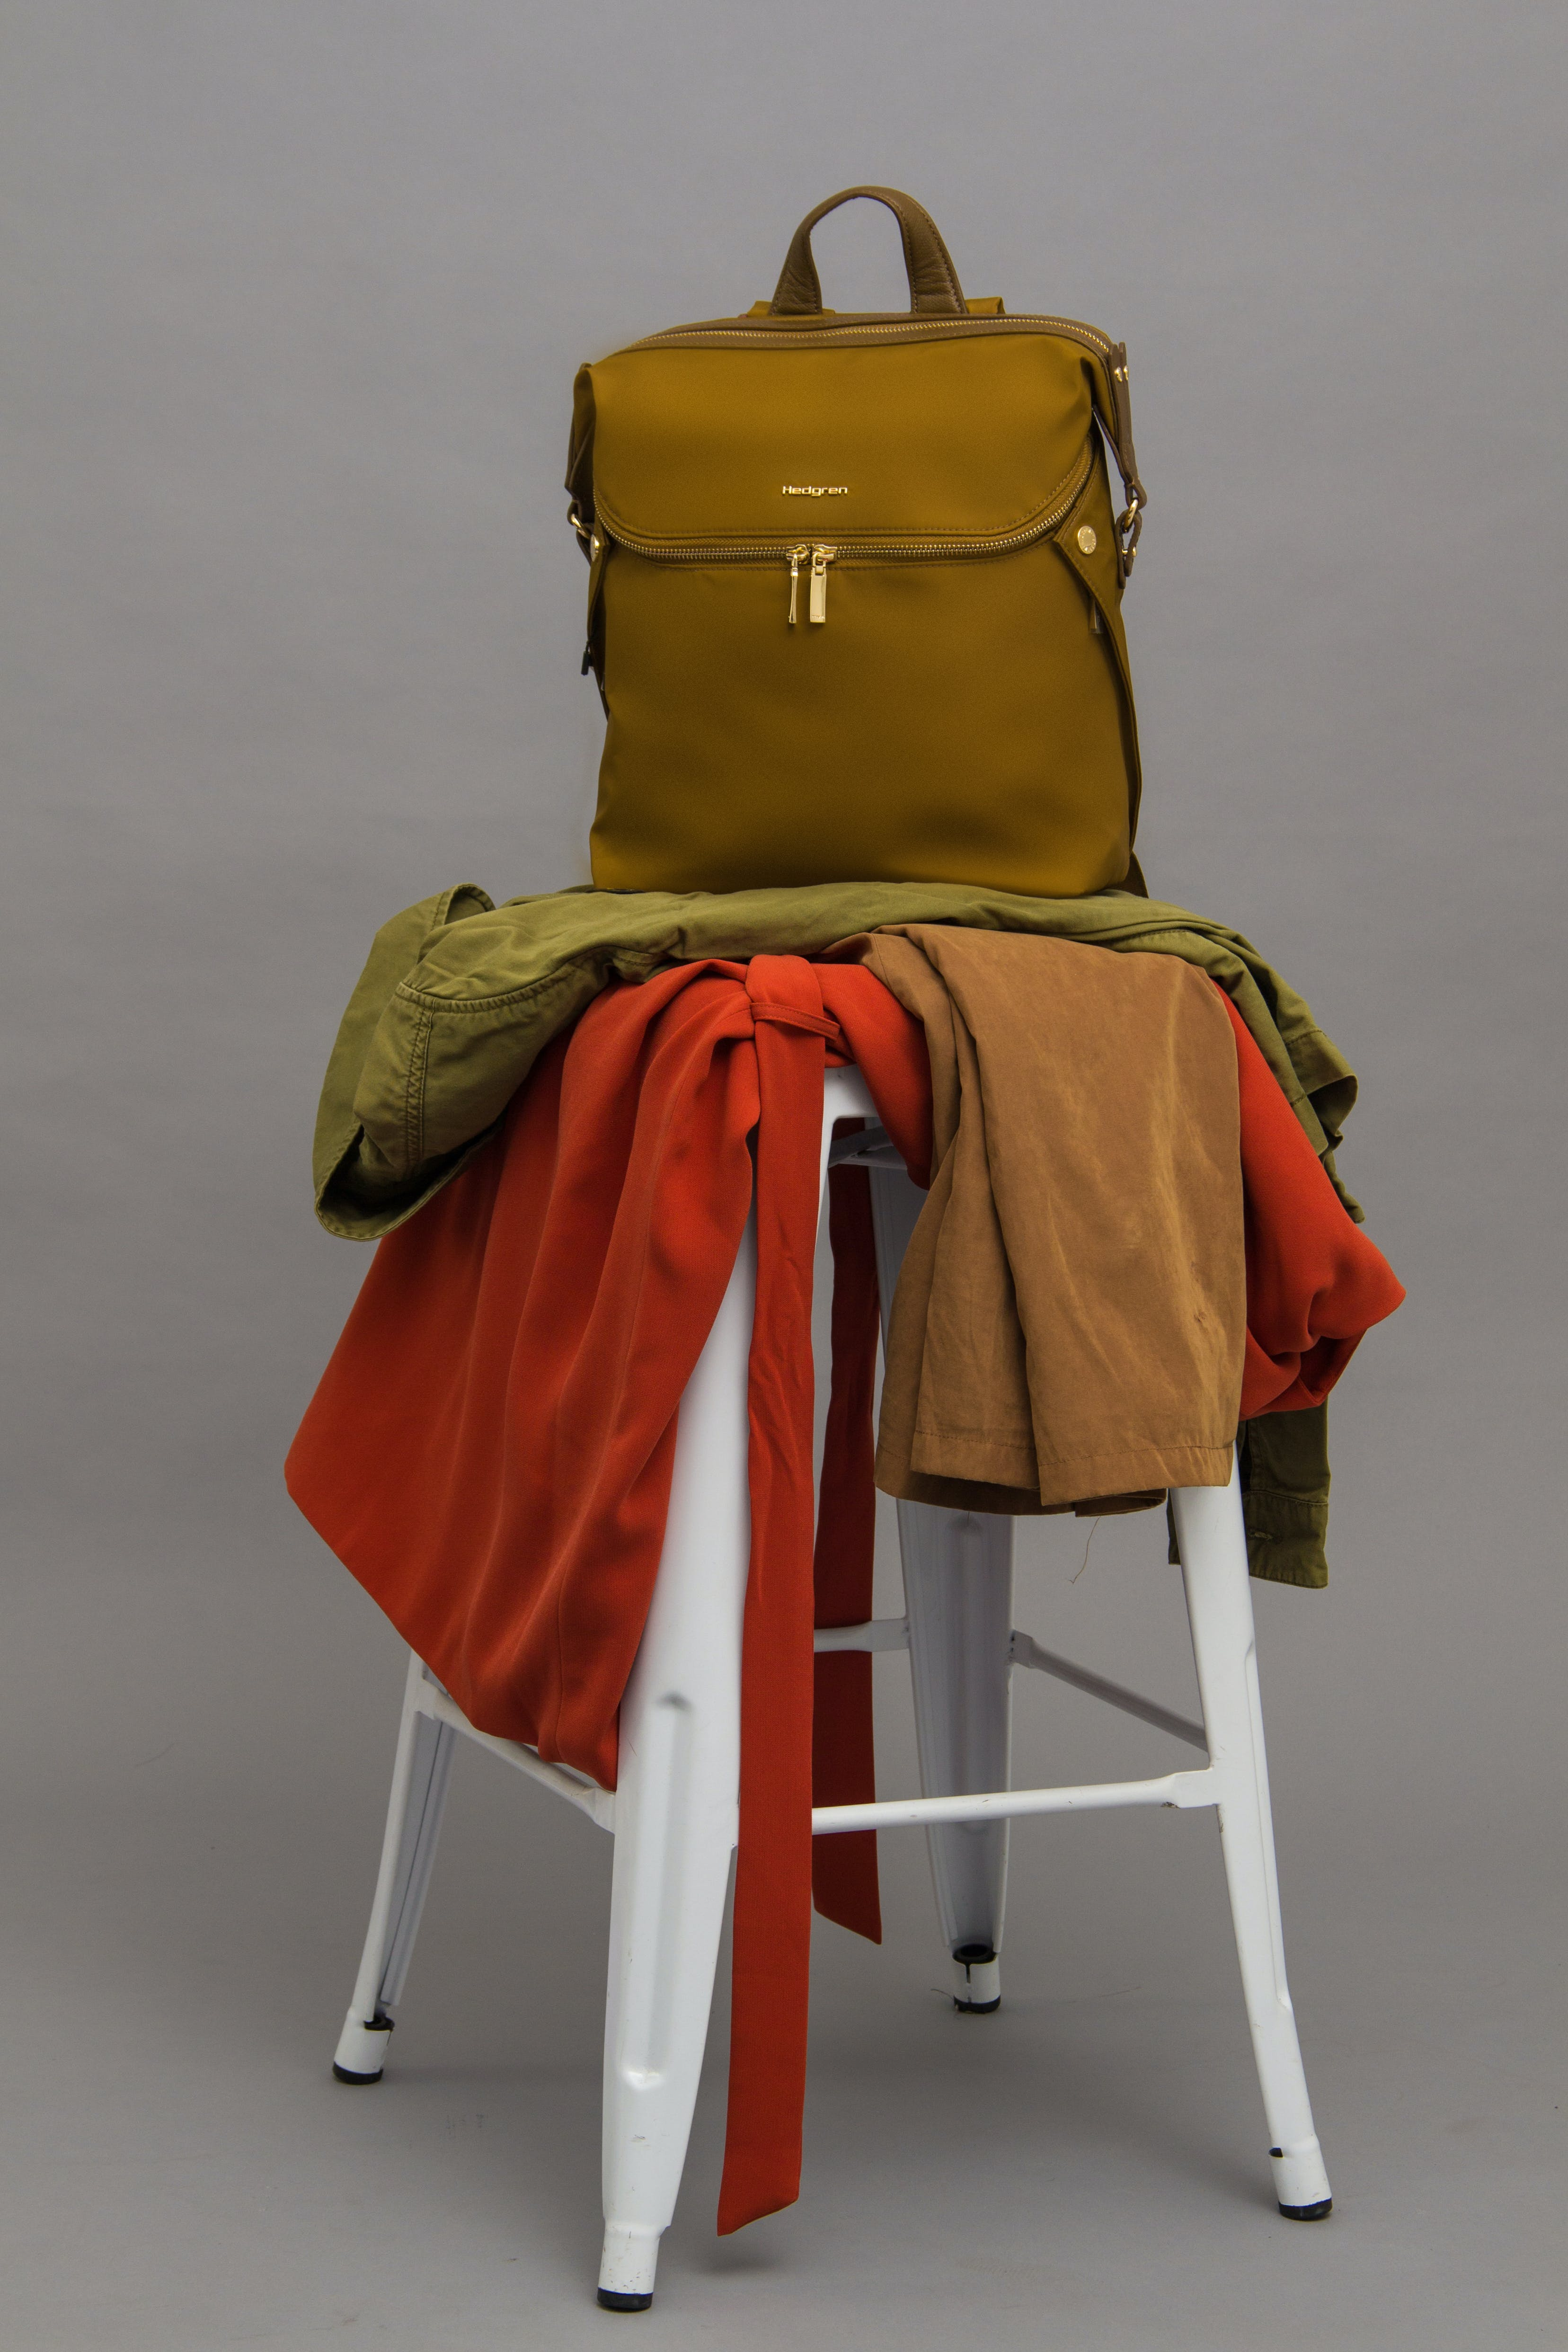 Brown Bag On Top Of Stool With Textiles